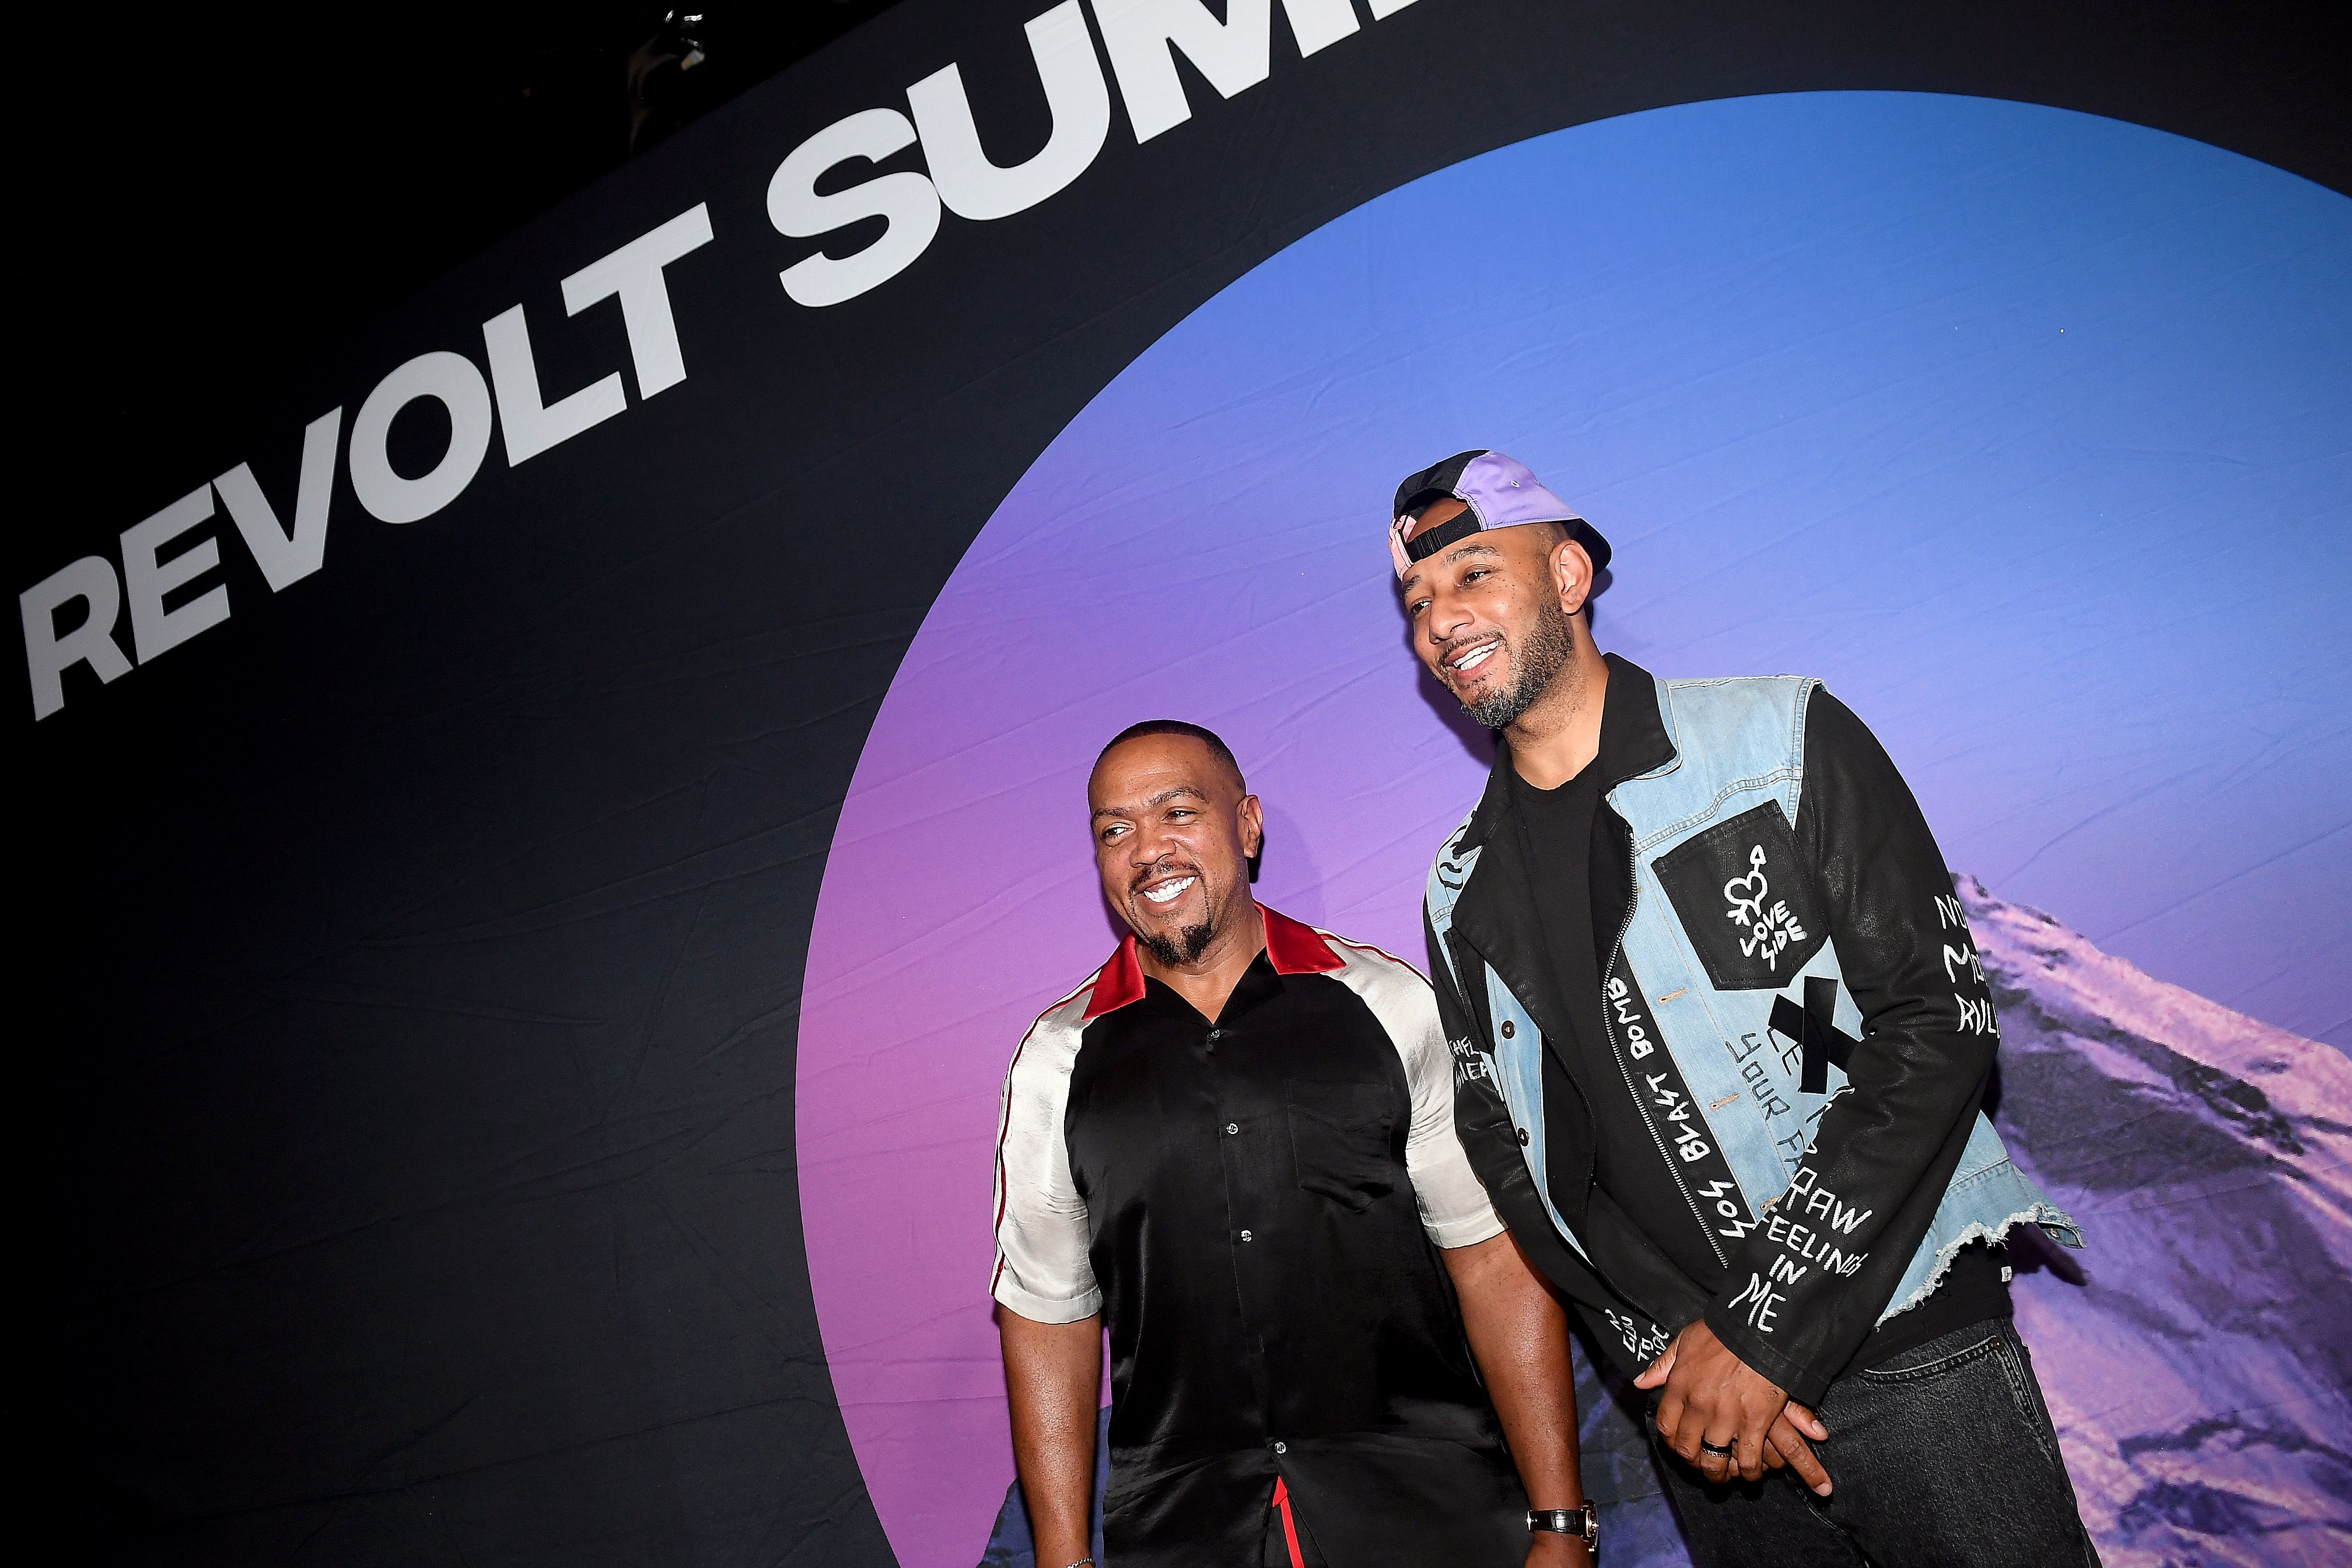 Timbalan and Swizz Beatz created a social media giant with 'Verzuz.'